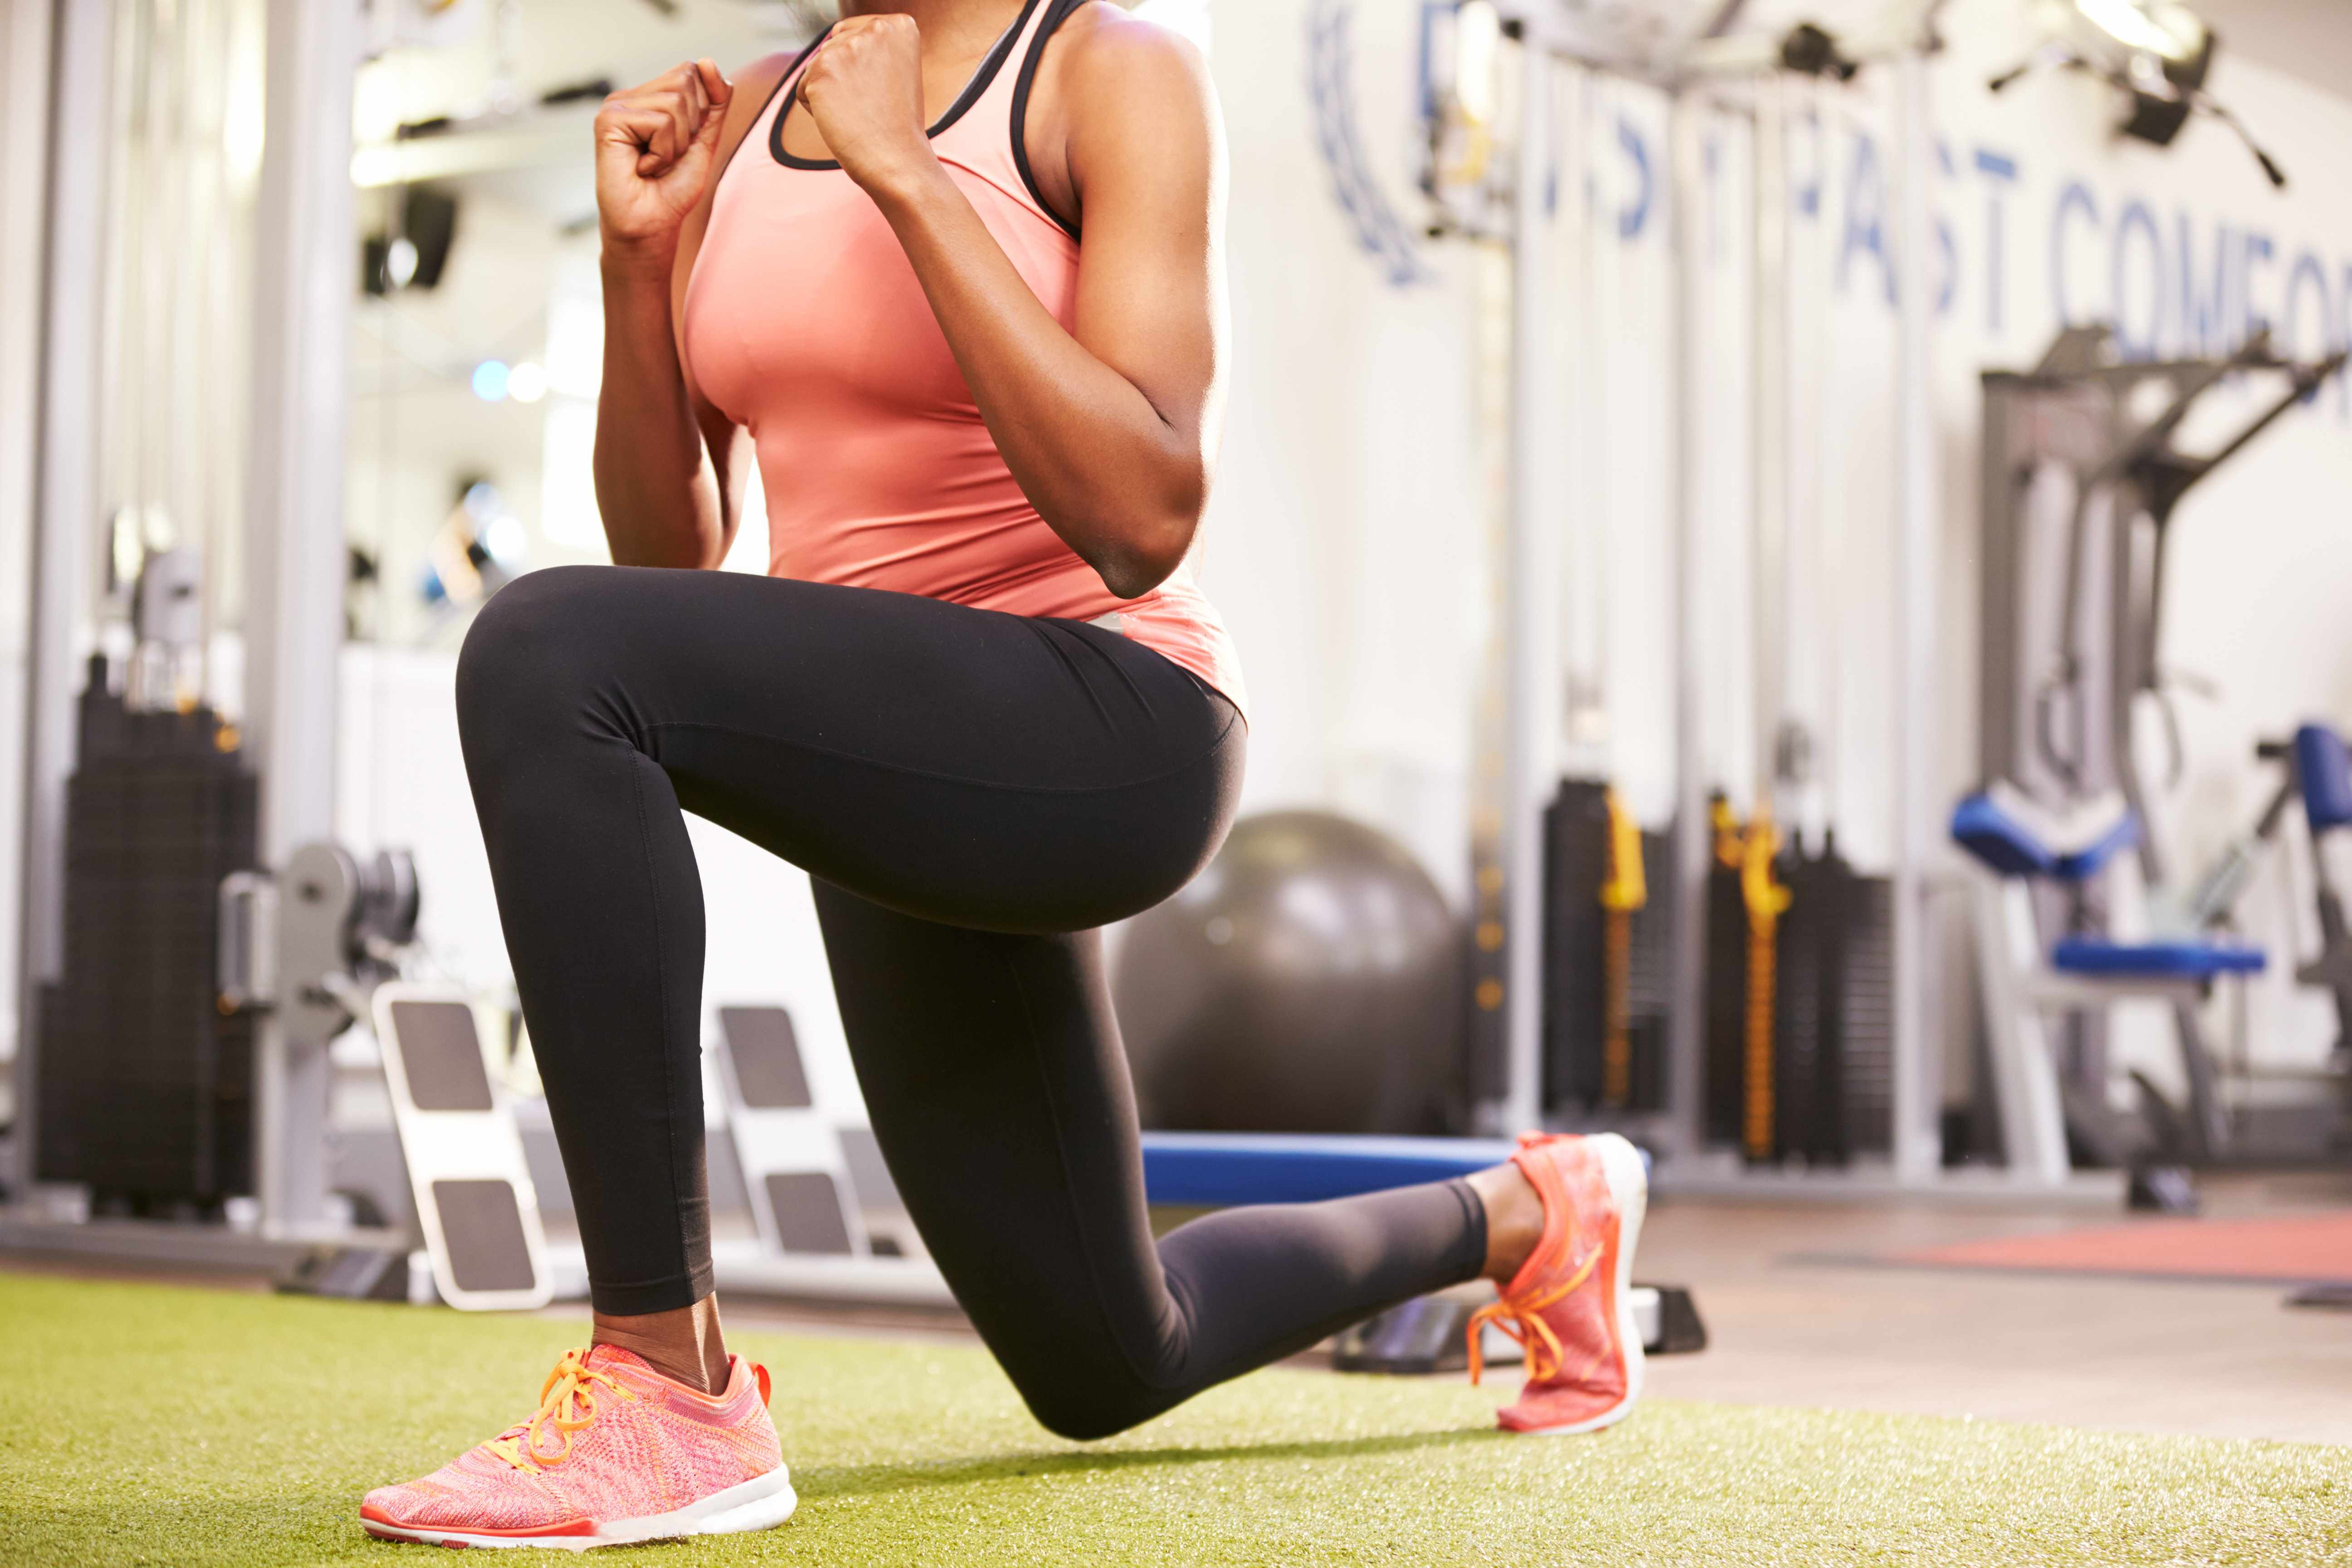 a woman doing walking lunges in a exercise gym